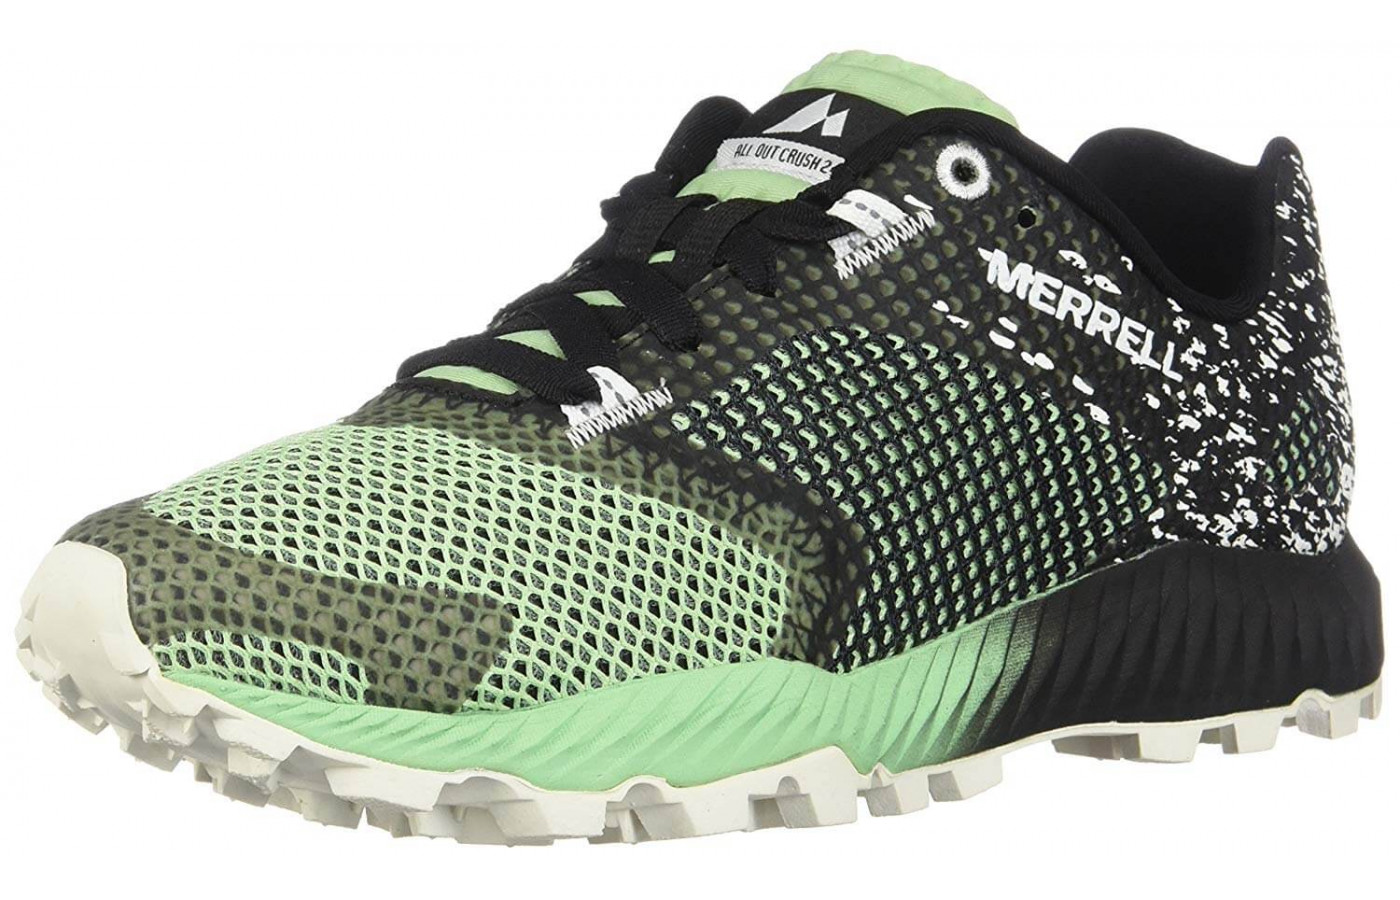 The All Out Crush 2 is available in green and grey for both men and women